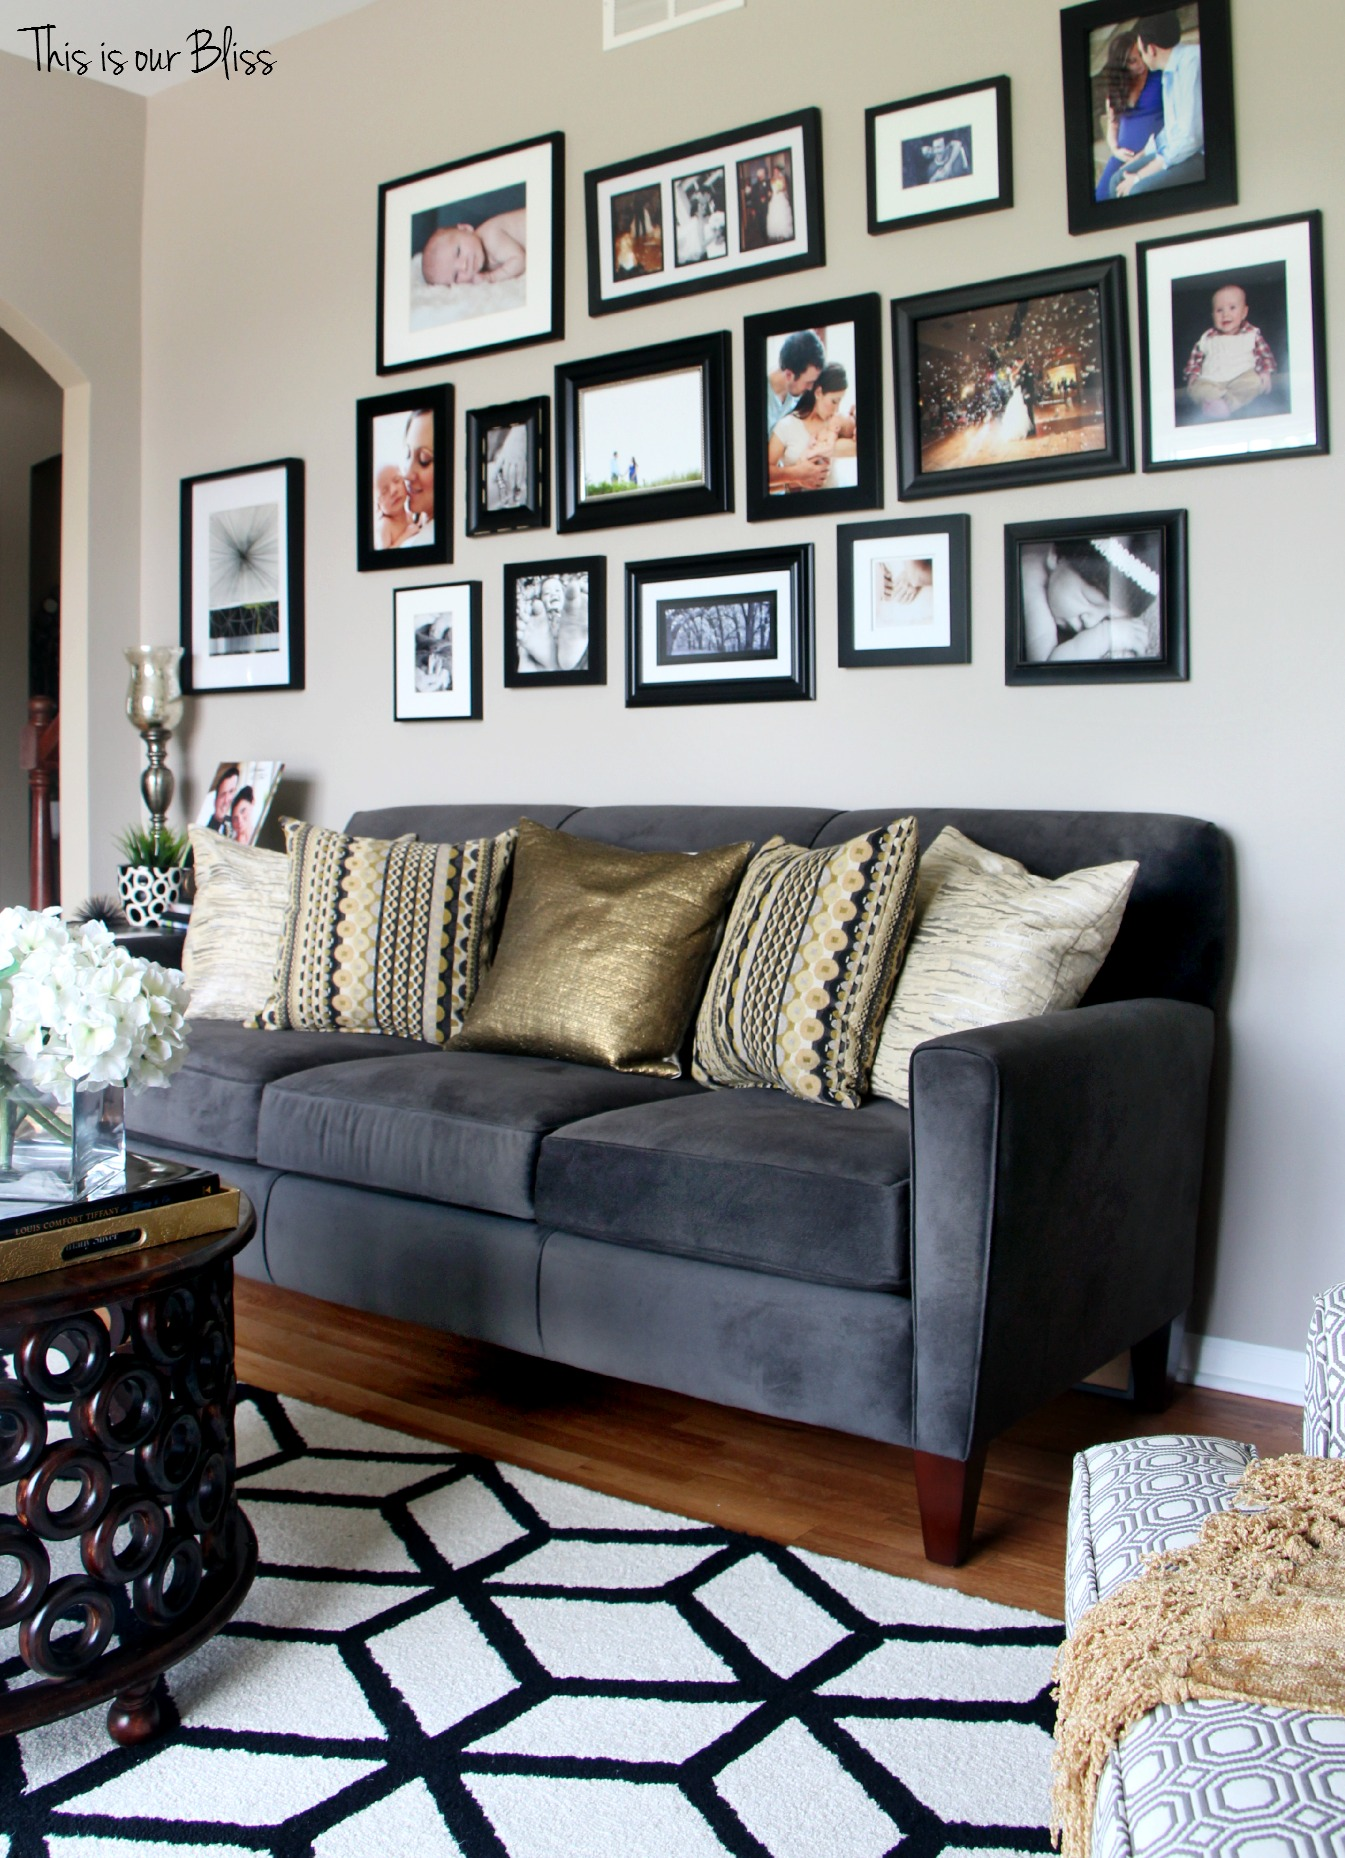 Formal LIving room gallery wall with all black frames This is our Bliss